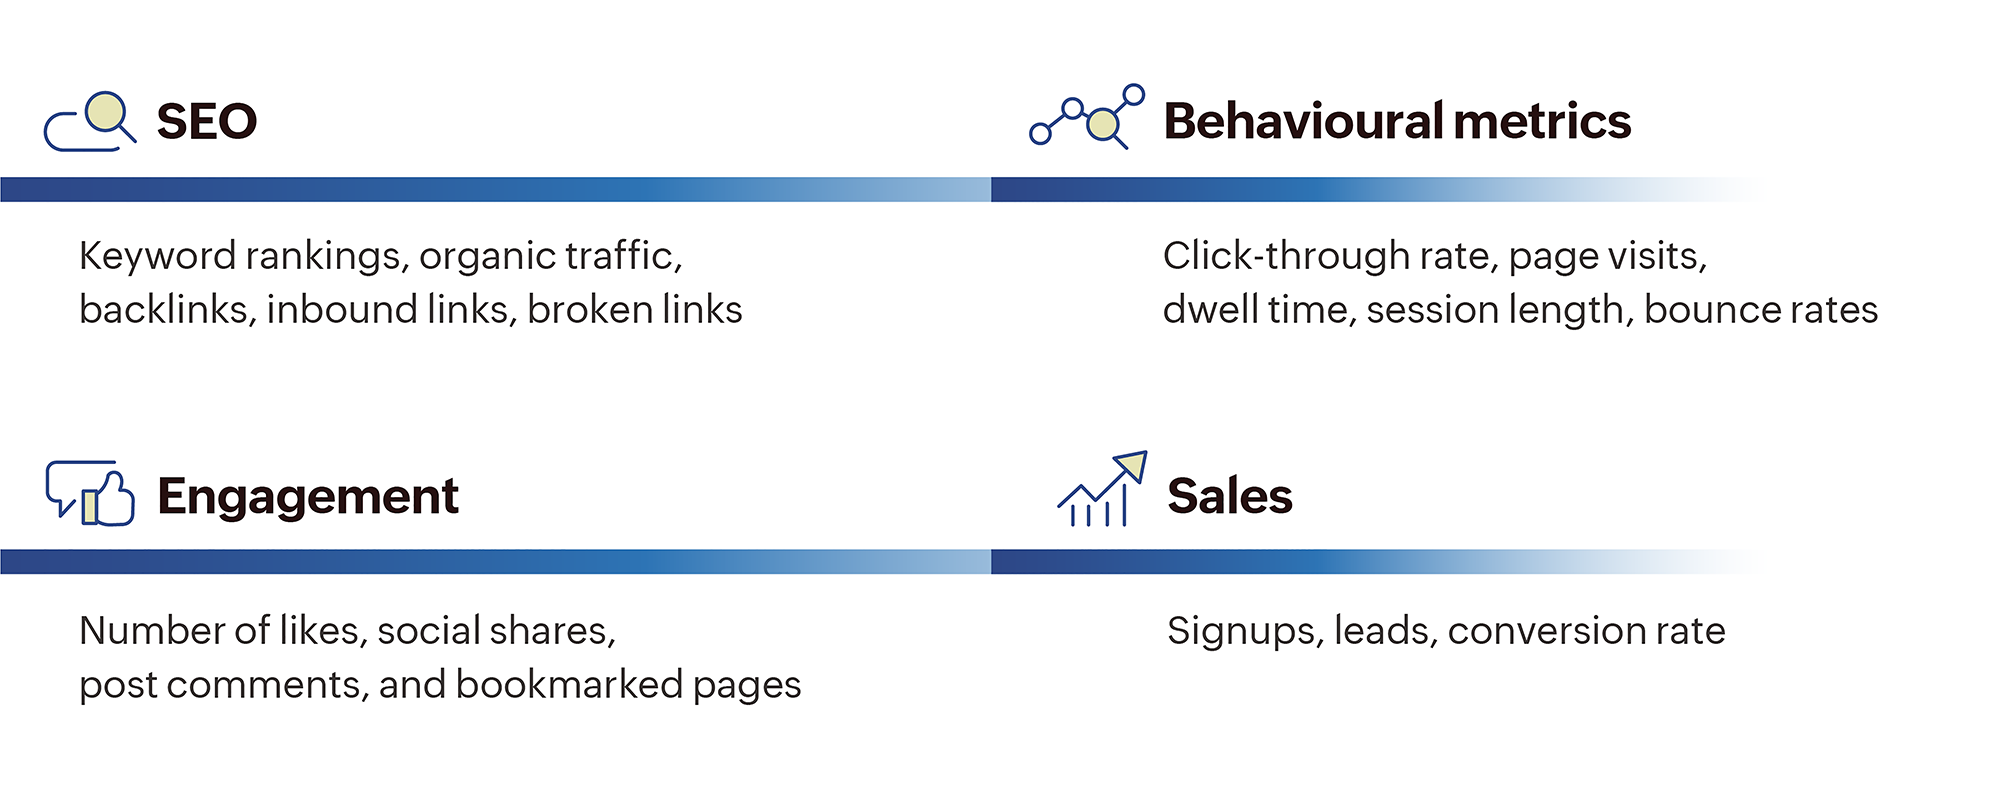 Metrics to look for while assessing content like SEO, keyword rankings, organic traffic, inbound liks, engagement on social media, click-through rate, page visits, bounce rate,signups and lead conversion.